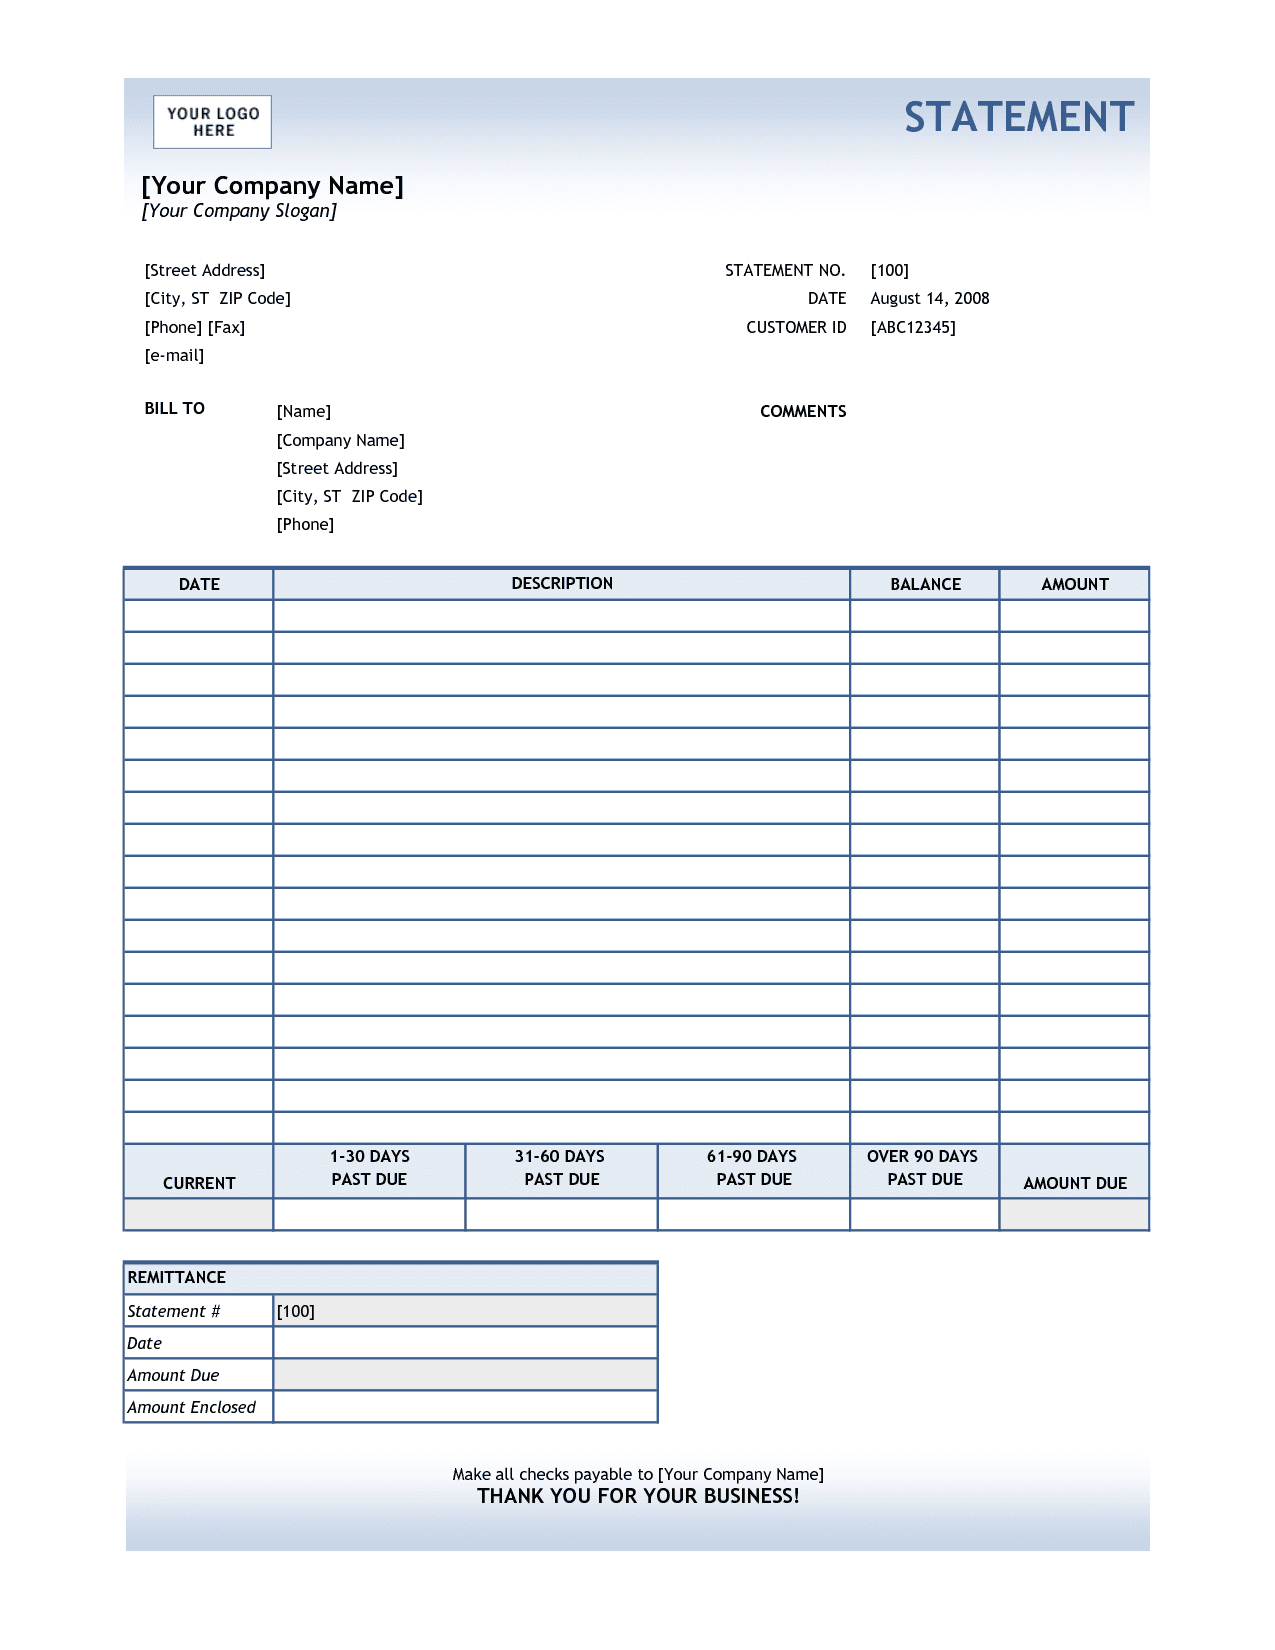 Example Of A Medical Billing Statement And Sample Billing Statement For Services Rendered